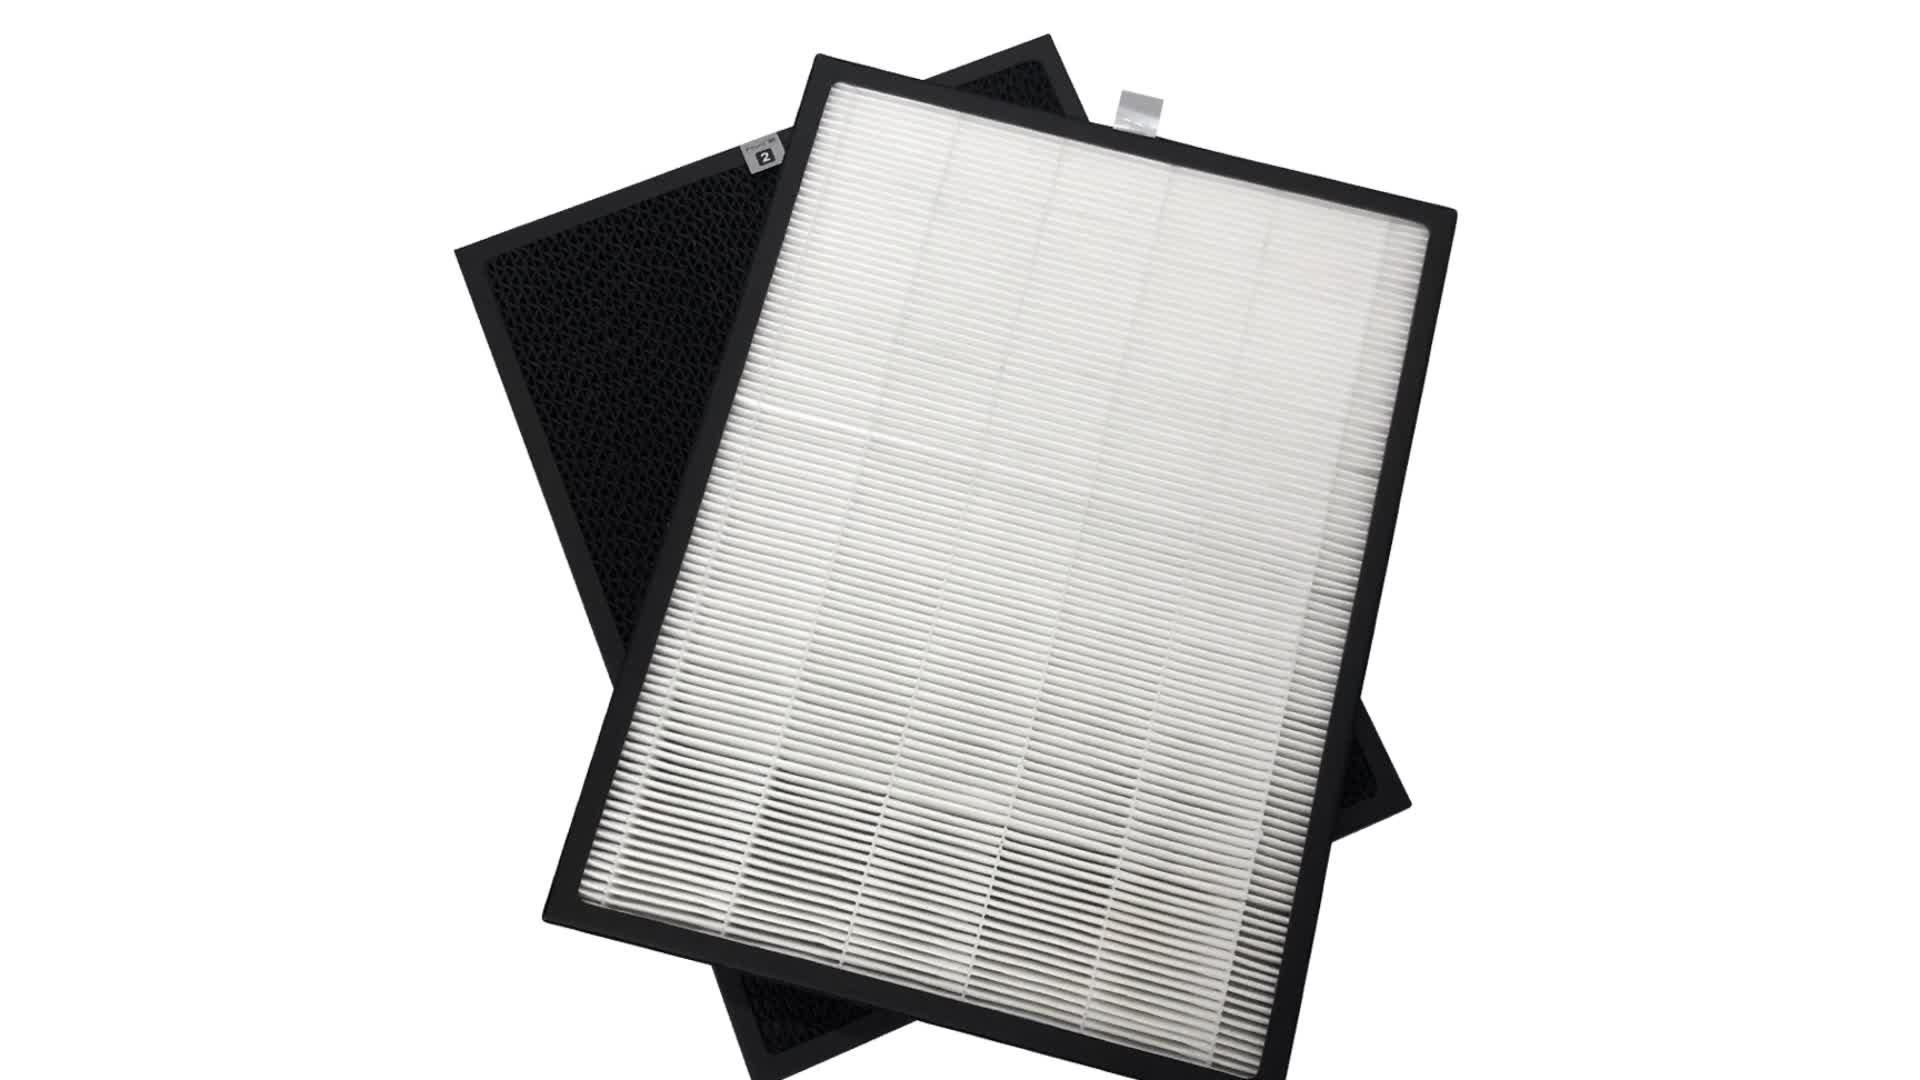 Customized Panel Activated Carbon True HEPA Air Filter Replacement for Air Purifier Parts